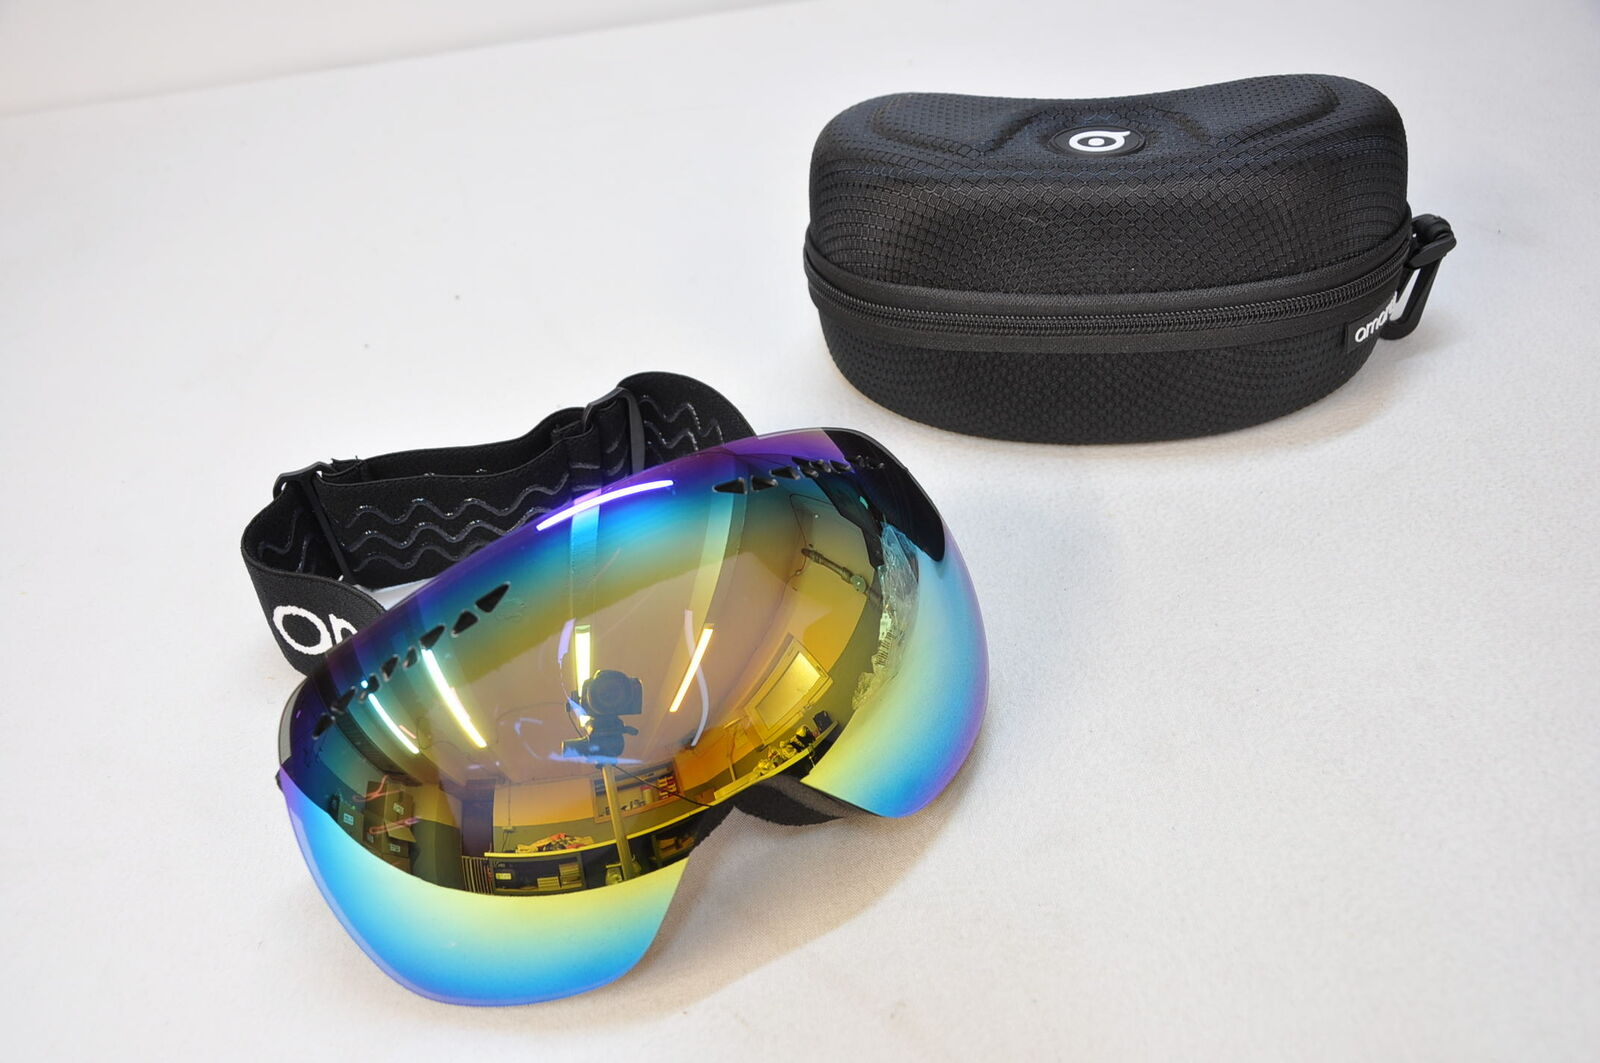 Ski Goggles Snowboard Glasses Snow Goggles Winter Sport Glasses Antifog 18-JT6802 034